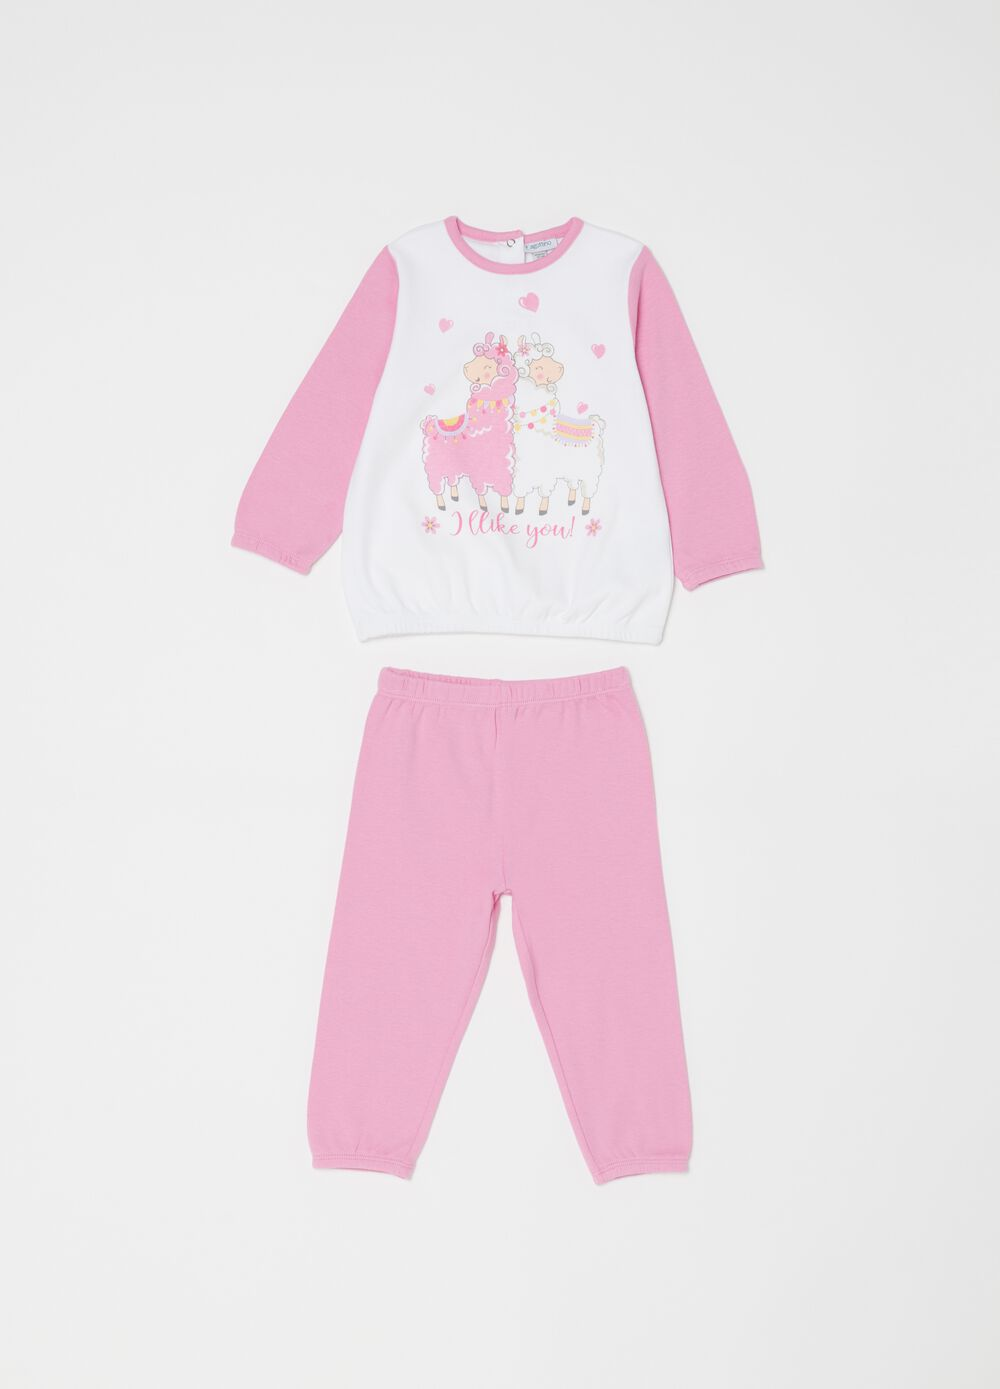 100% organic cotton pyjamas with sheep print